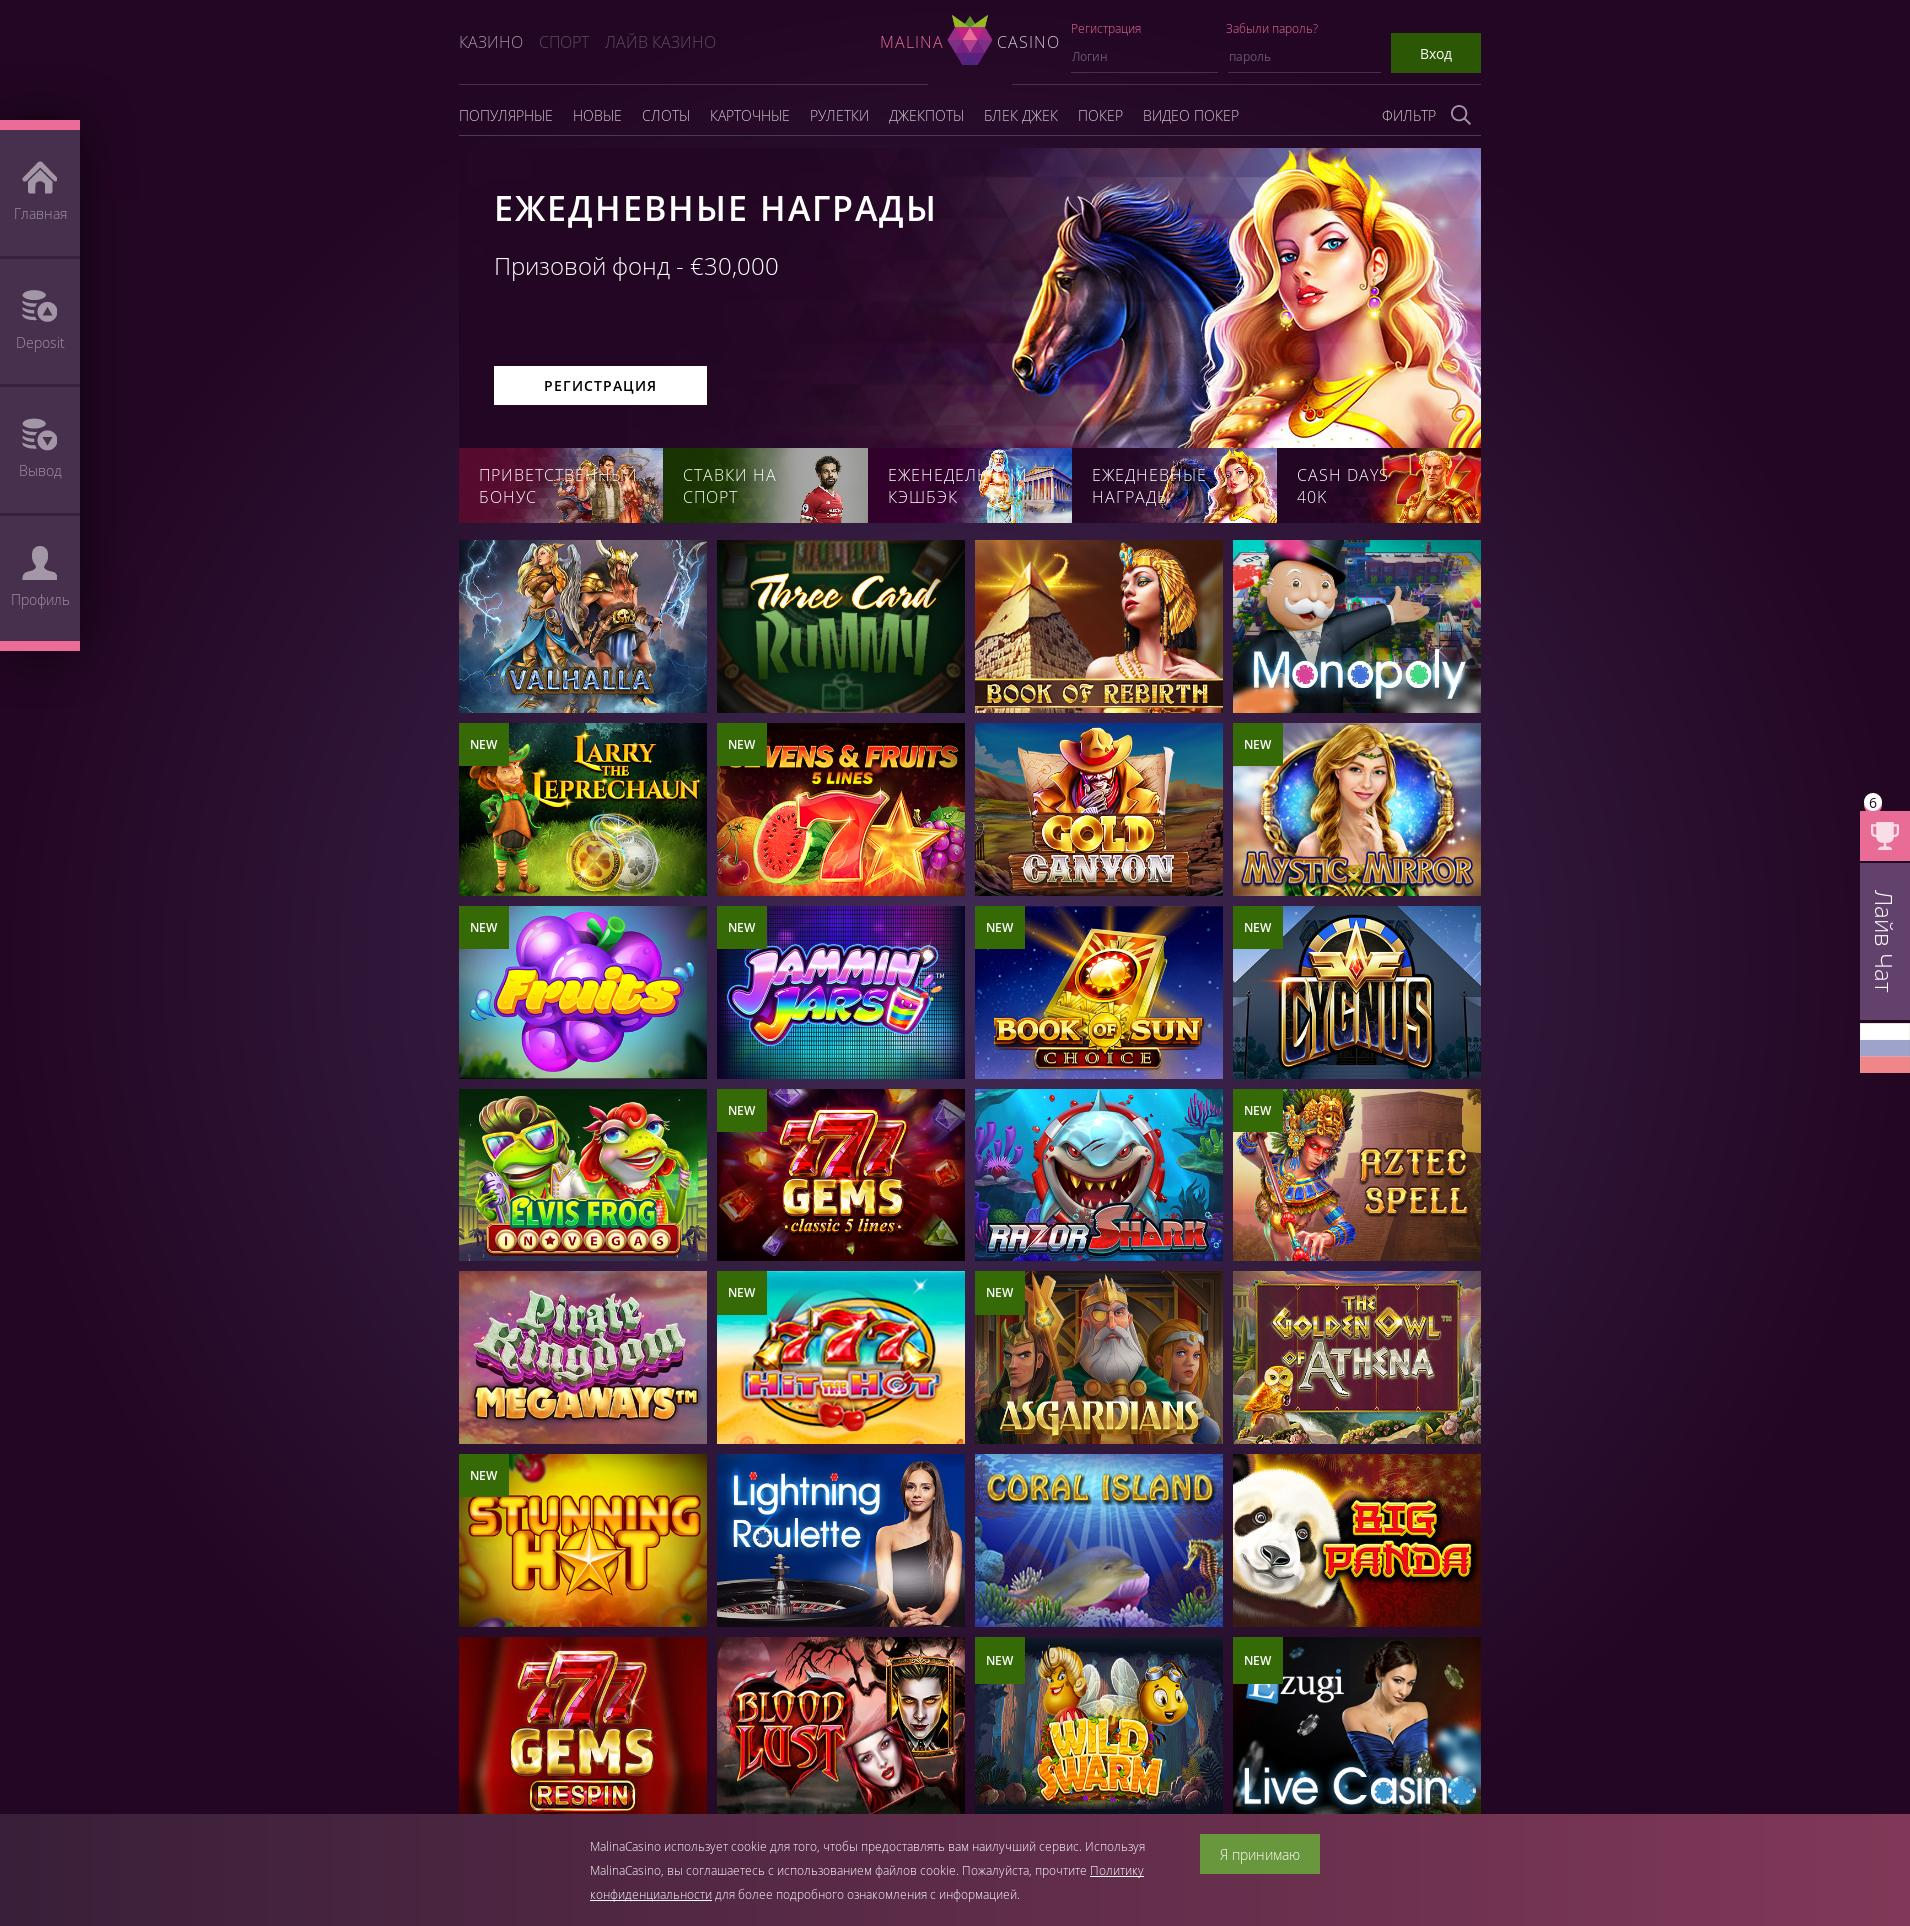 Casino screen Lobby 2020-06-04 for Russian Federation